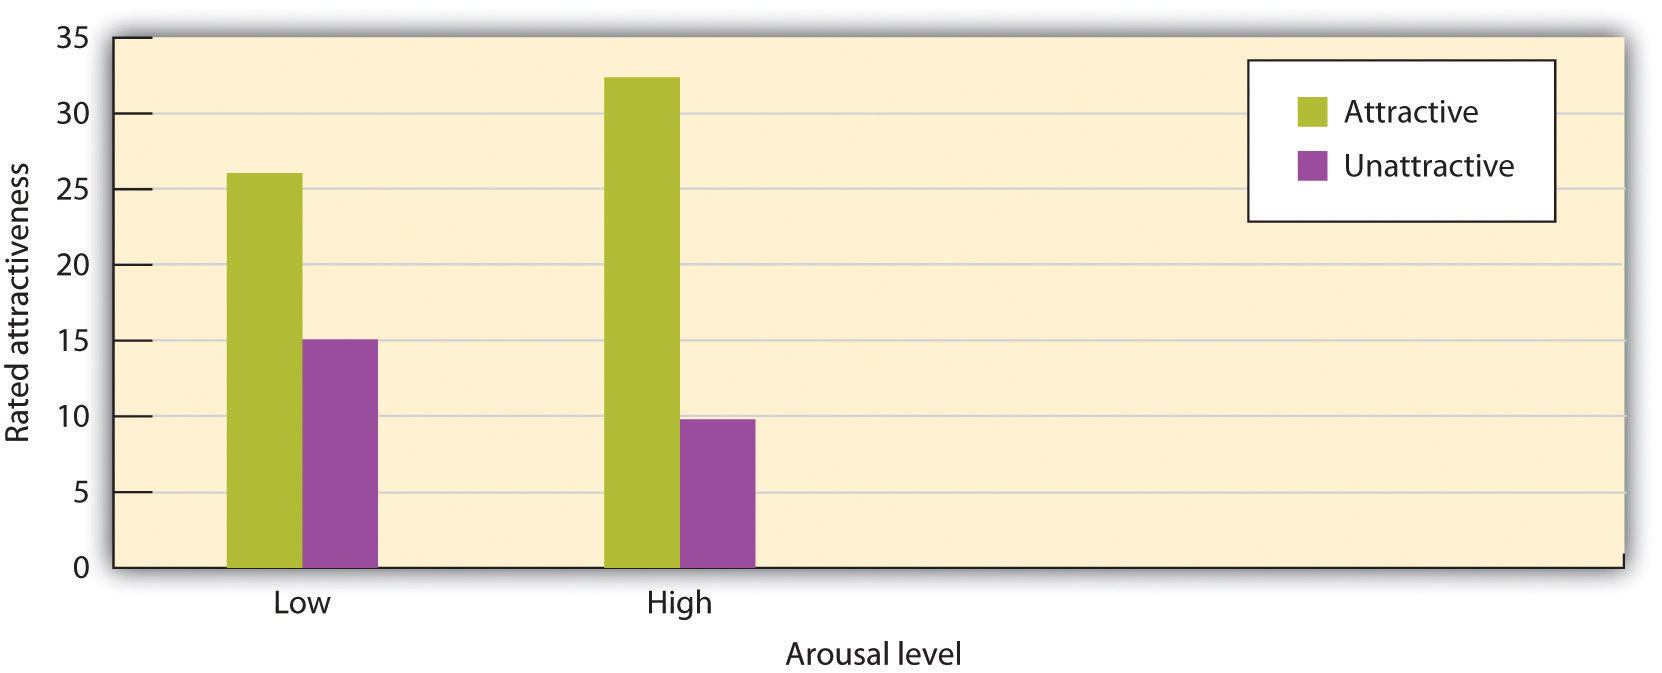 Arousal polarizes judgments. In this experiment, male college students rated an attractive or an unattractive woman after they had run in place for 15 seconds (low arousal) or for 120 seconds (high arousal). The judgments under arousal are polarized.